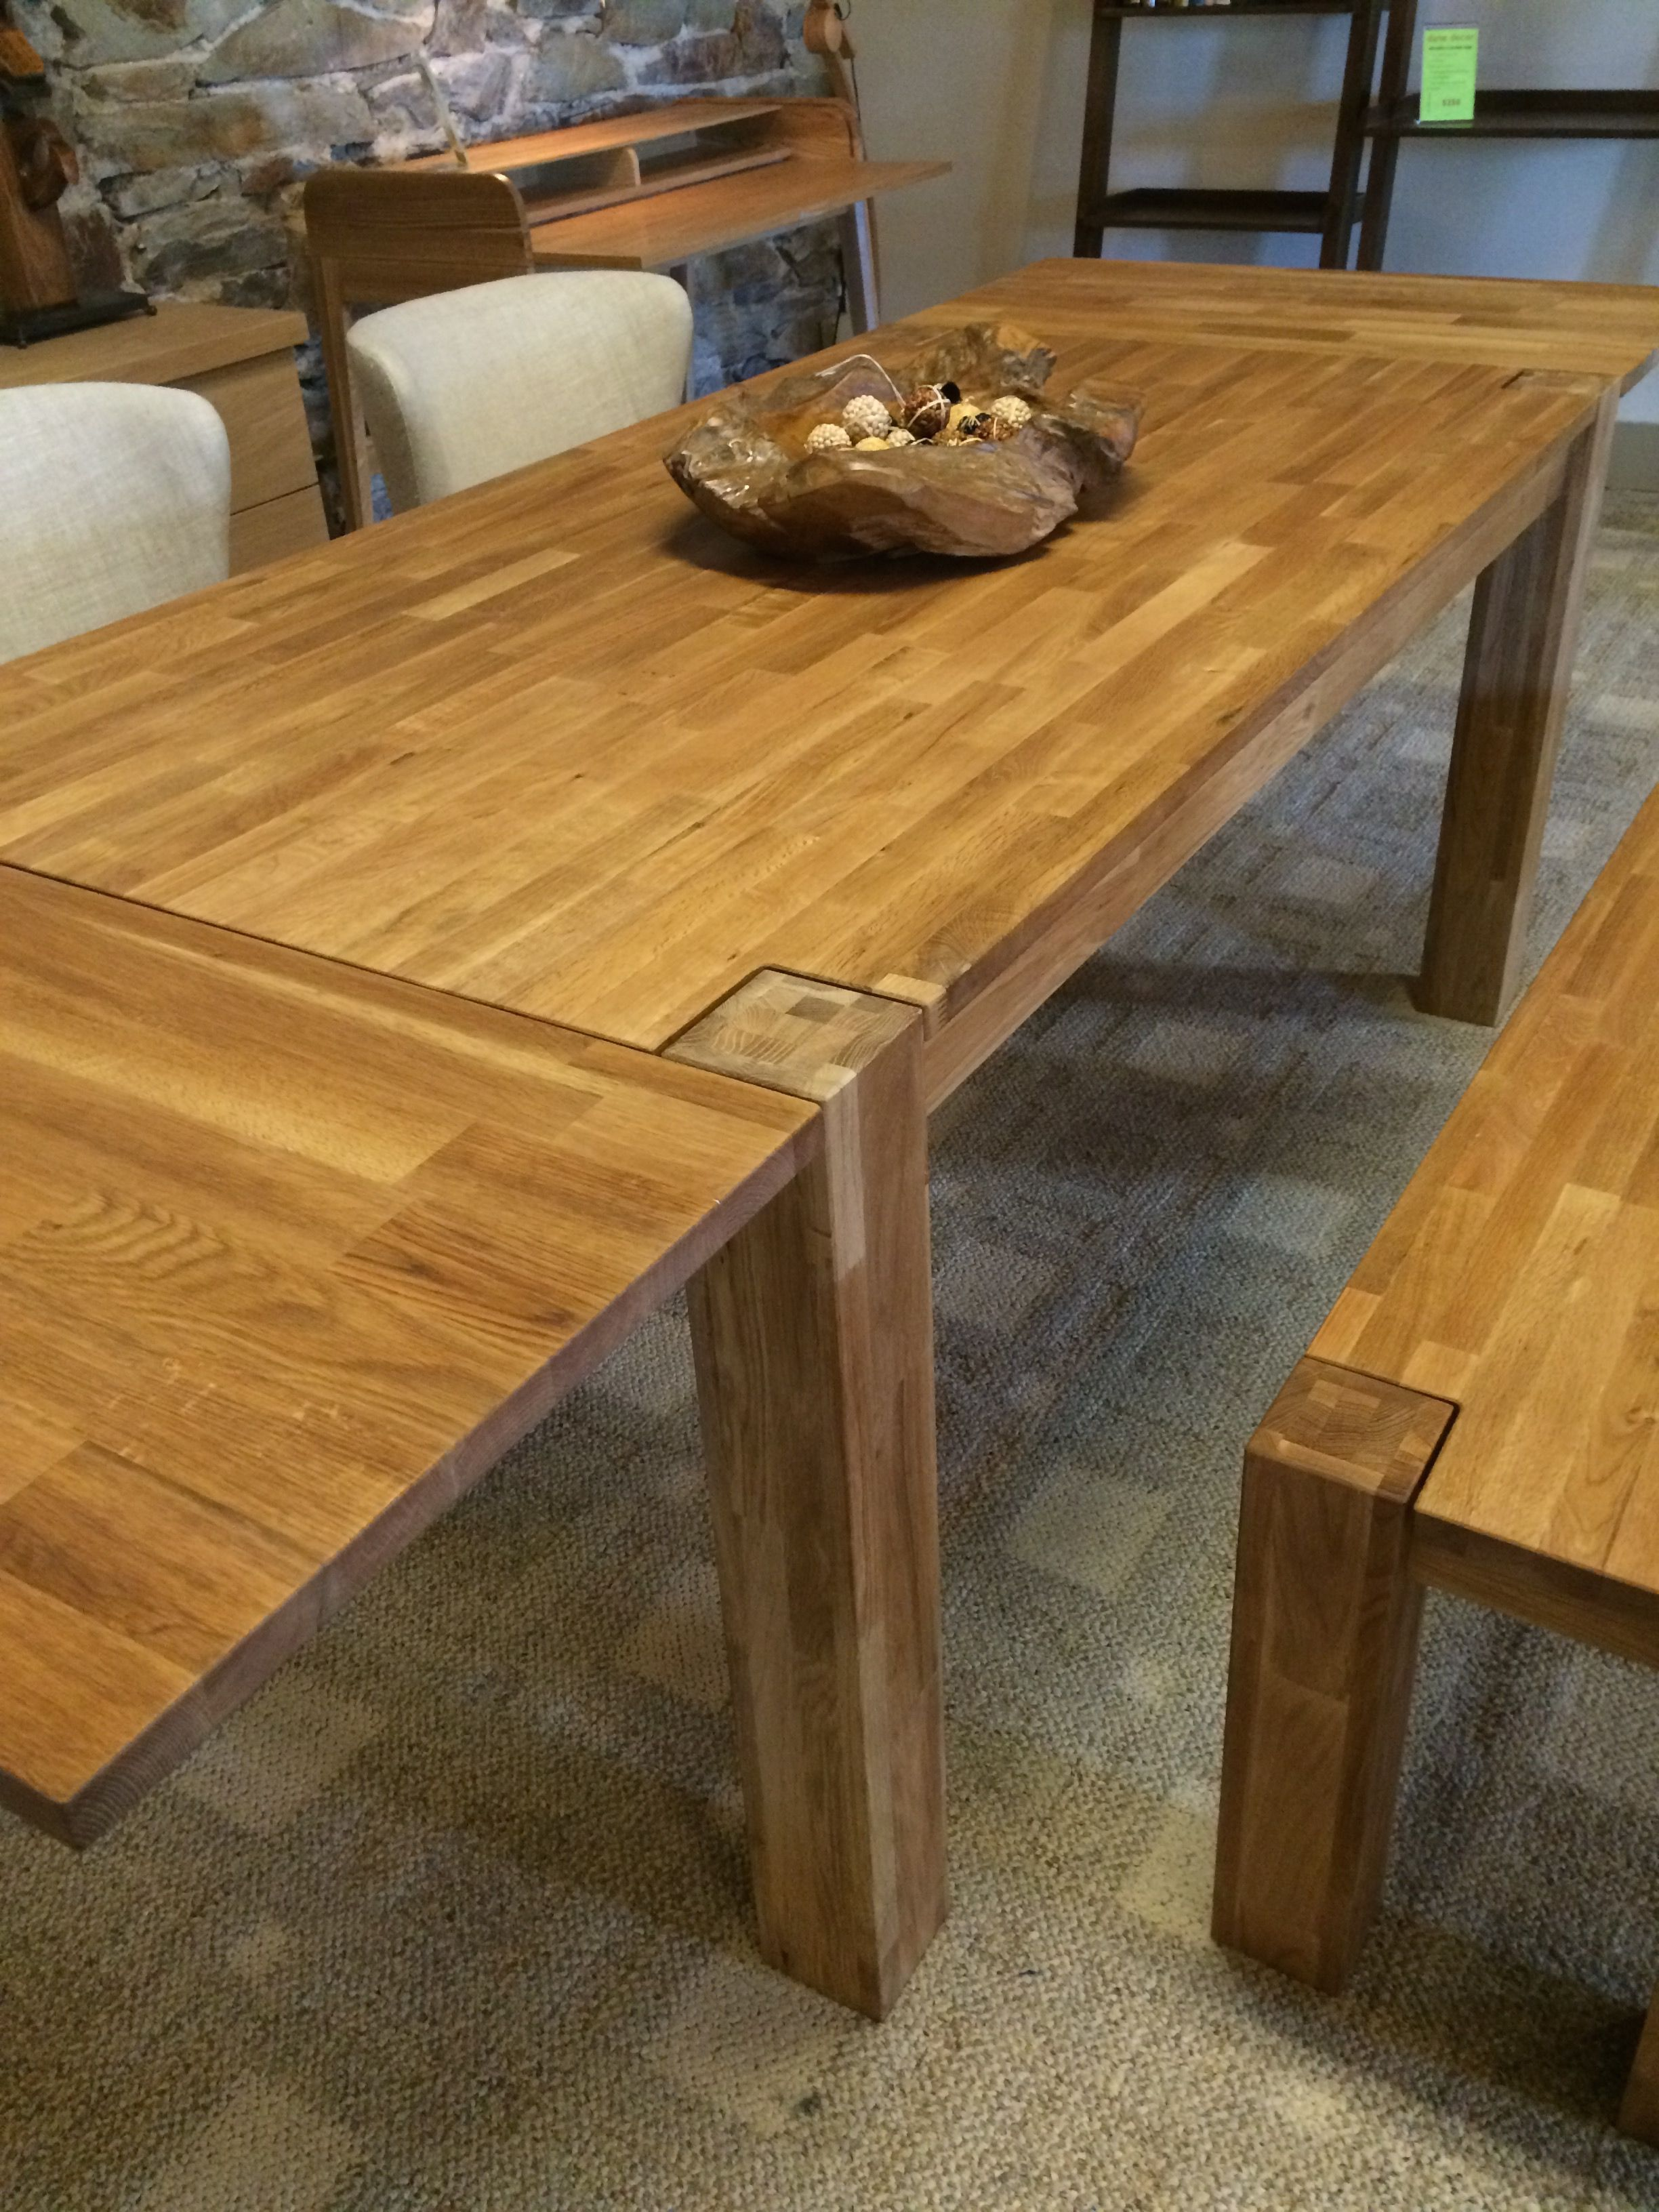 Harvest Wood Dining Table Features A Rustic Farm House Design With Seating From 6 To 10 People Both Leaf Extensions Modern Contemporary